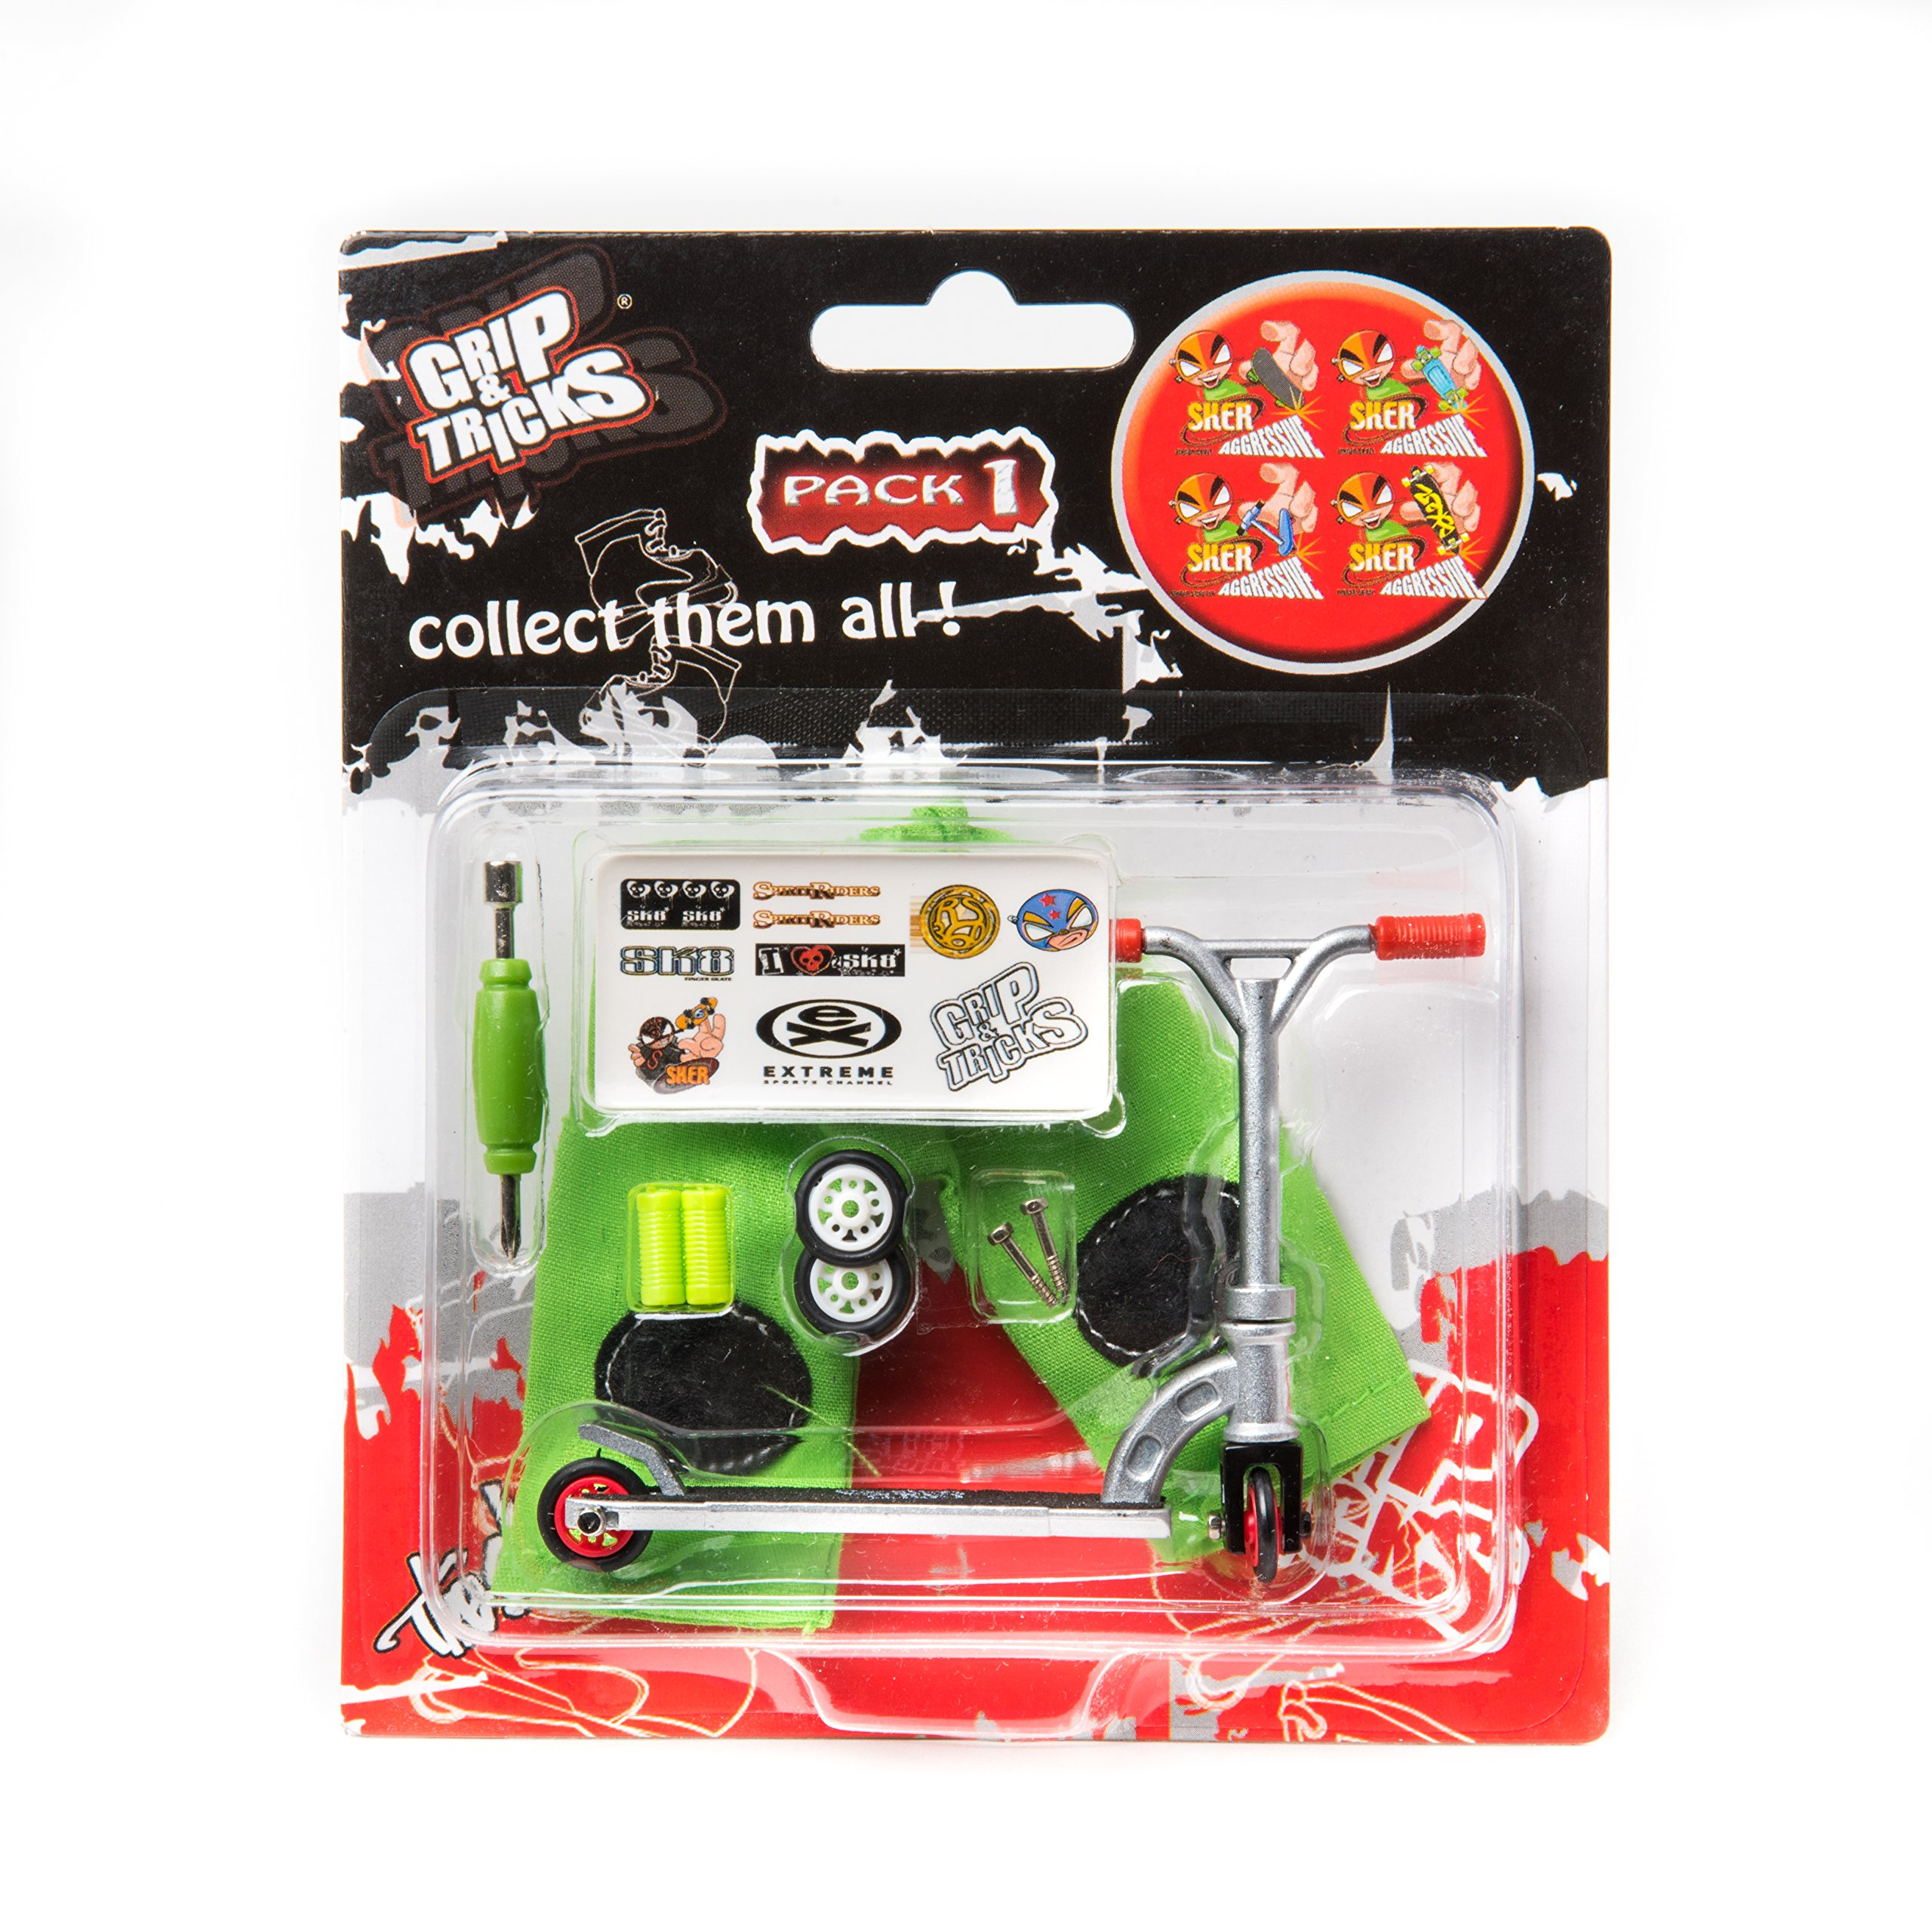 Scooter M7-Grip and Tricks - Finger SCOOTER - Skate - Pack1 - Silver/Red